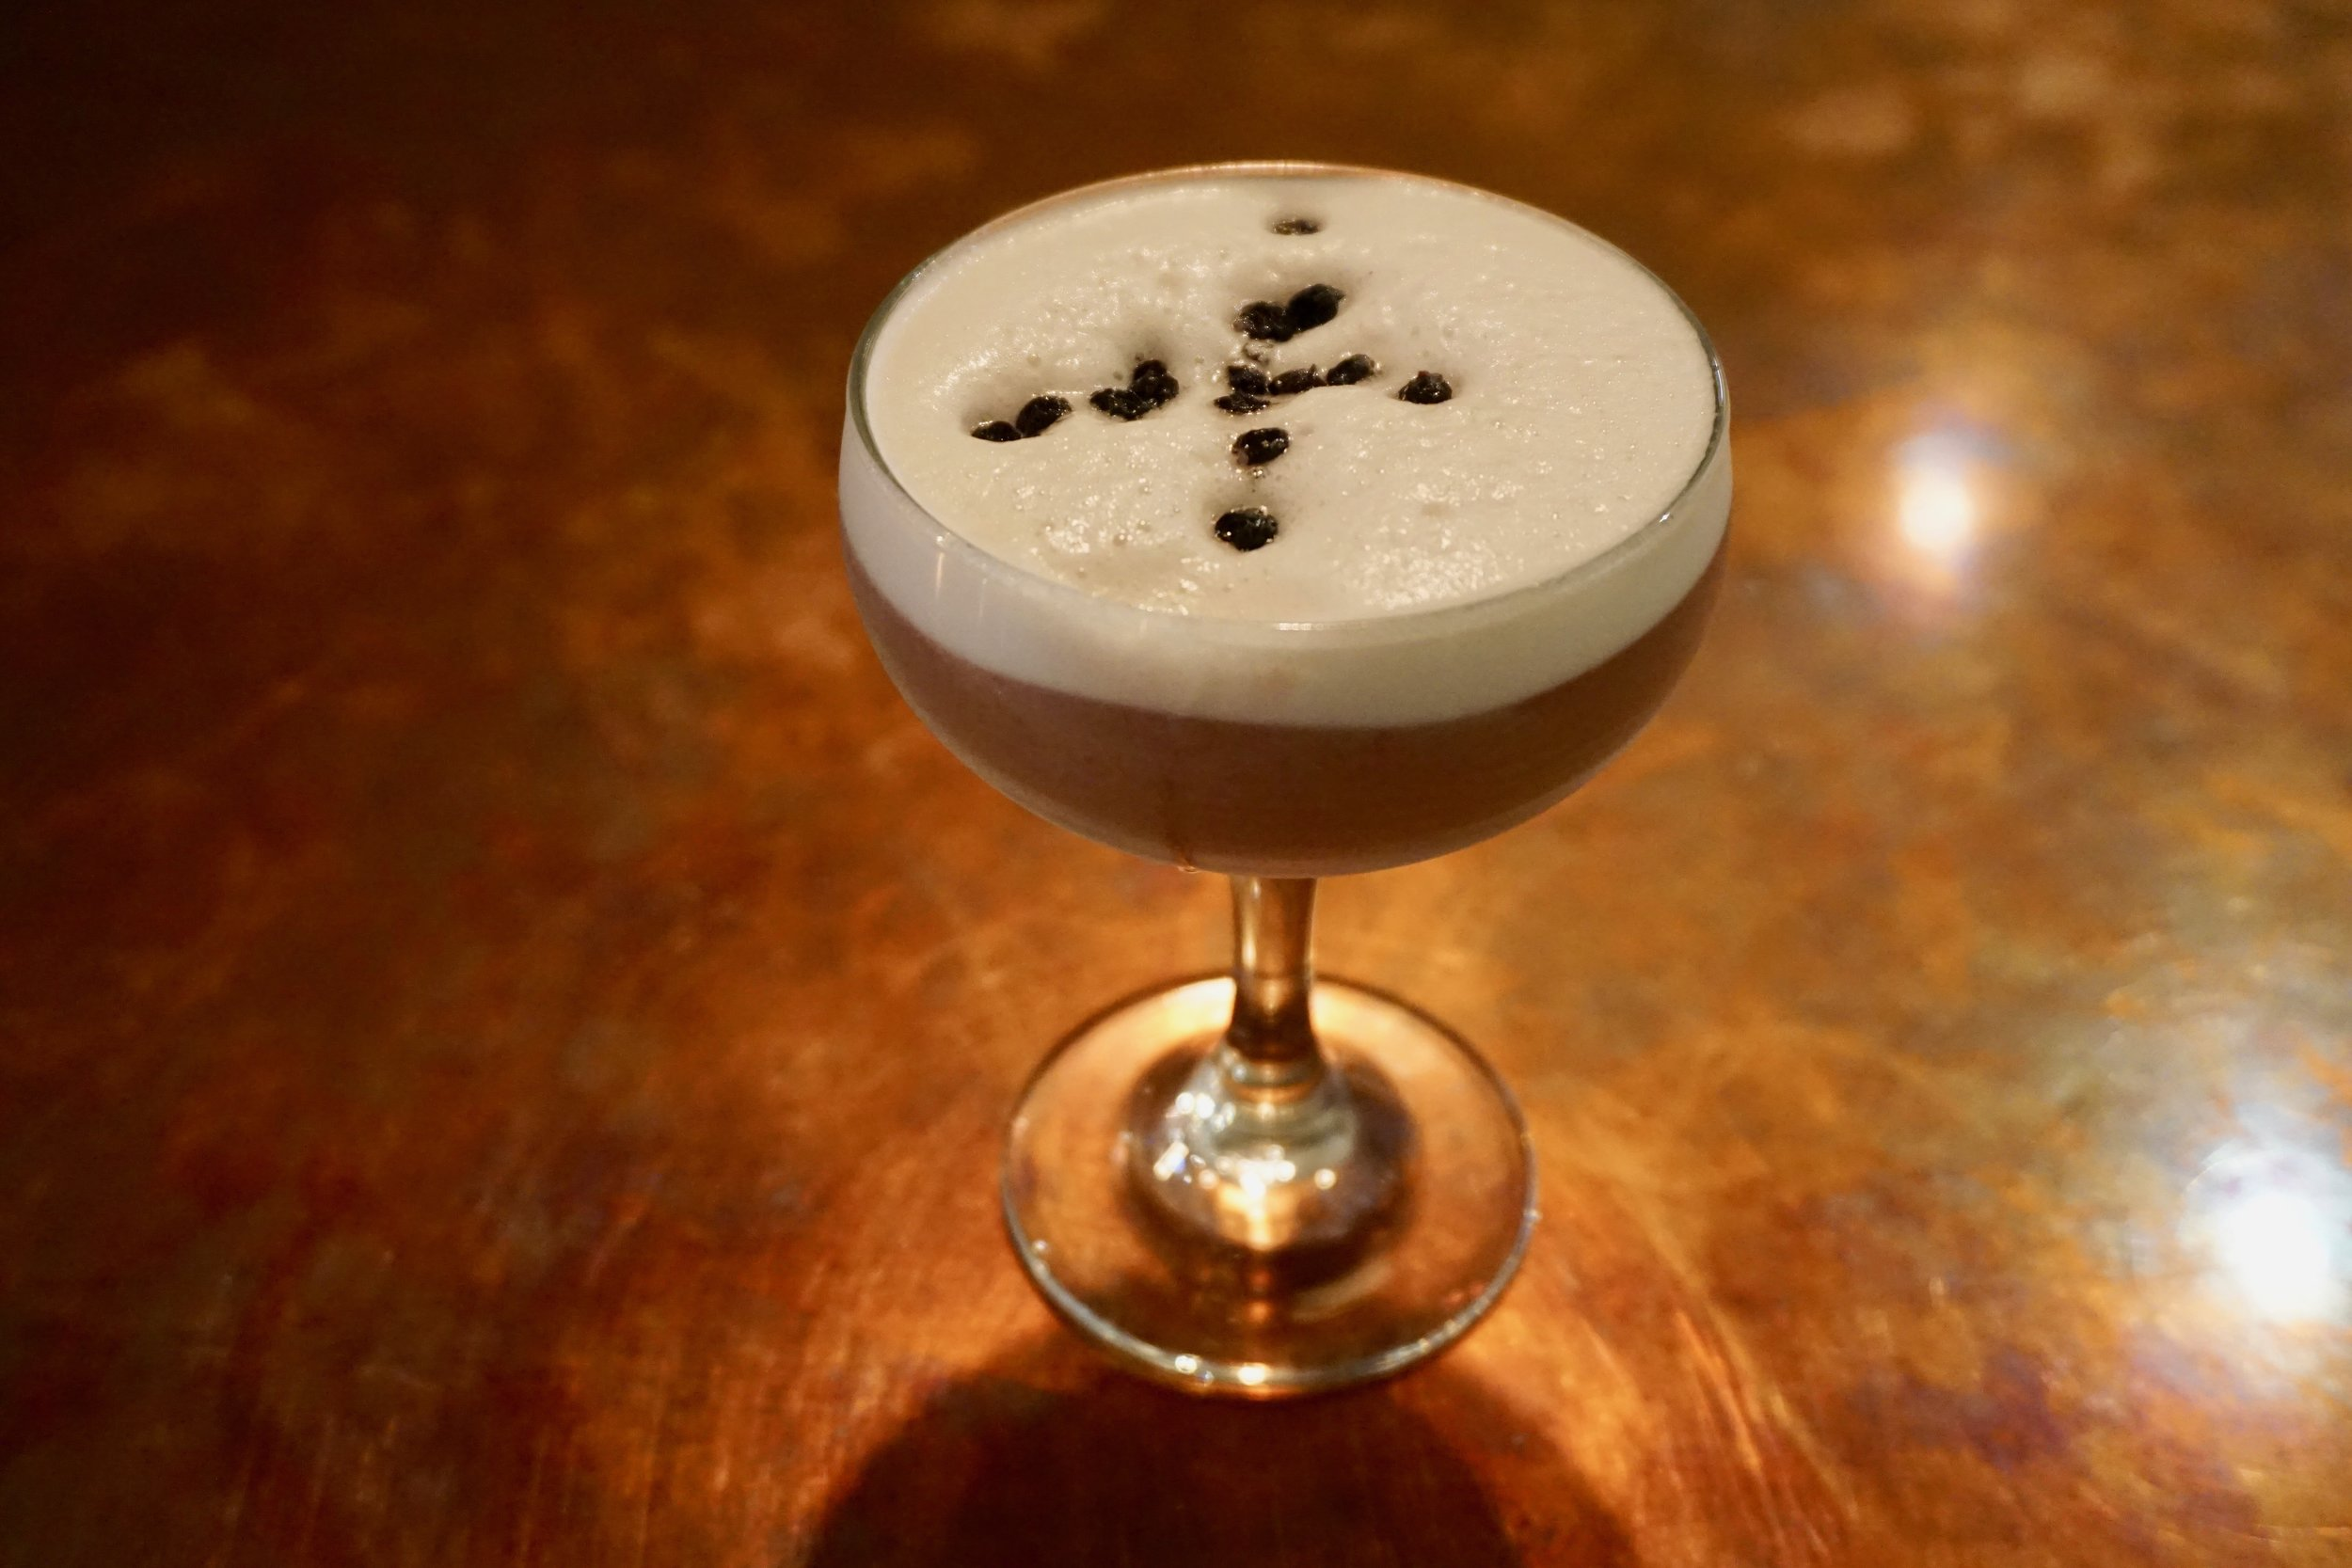 """Cohen's """"OG classic-meets-new Philly"""" Clover Club made from Keystone whiskey, Chester County-sourced honey and dehydrated blueberries"""